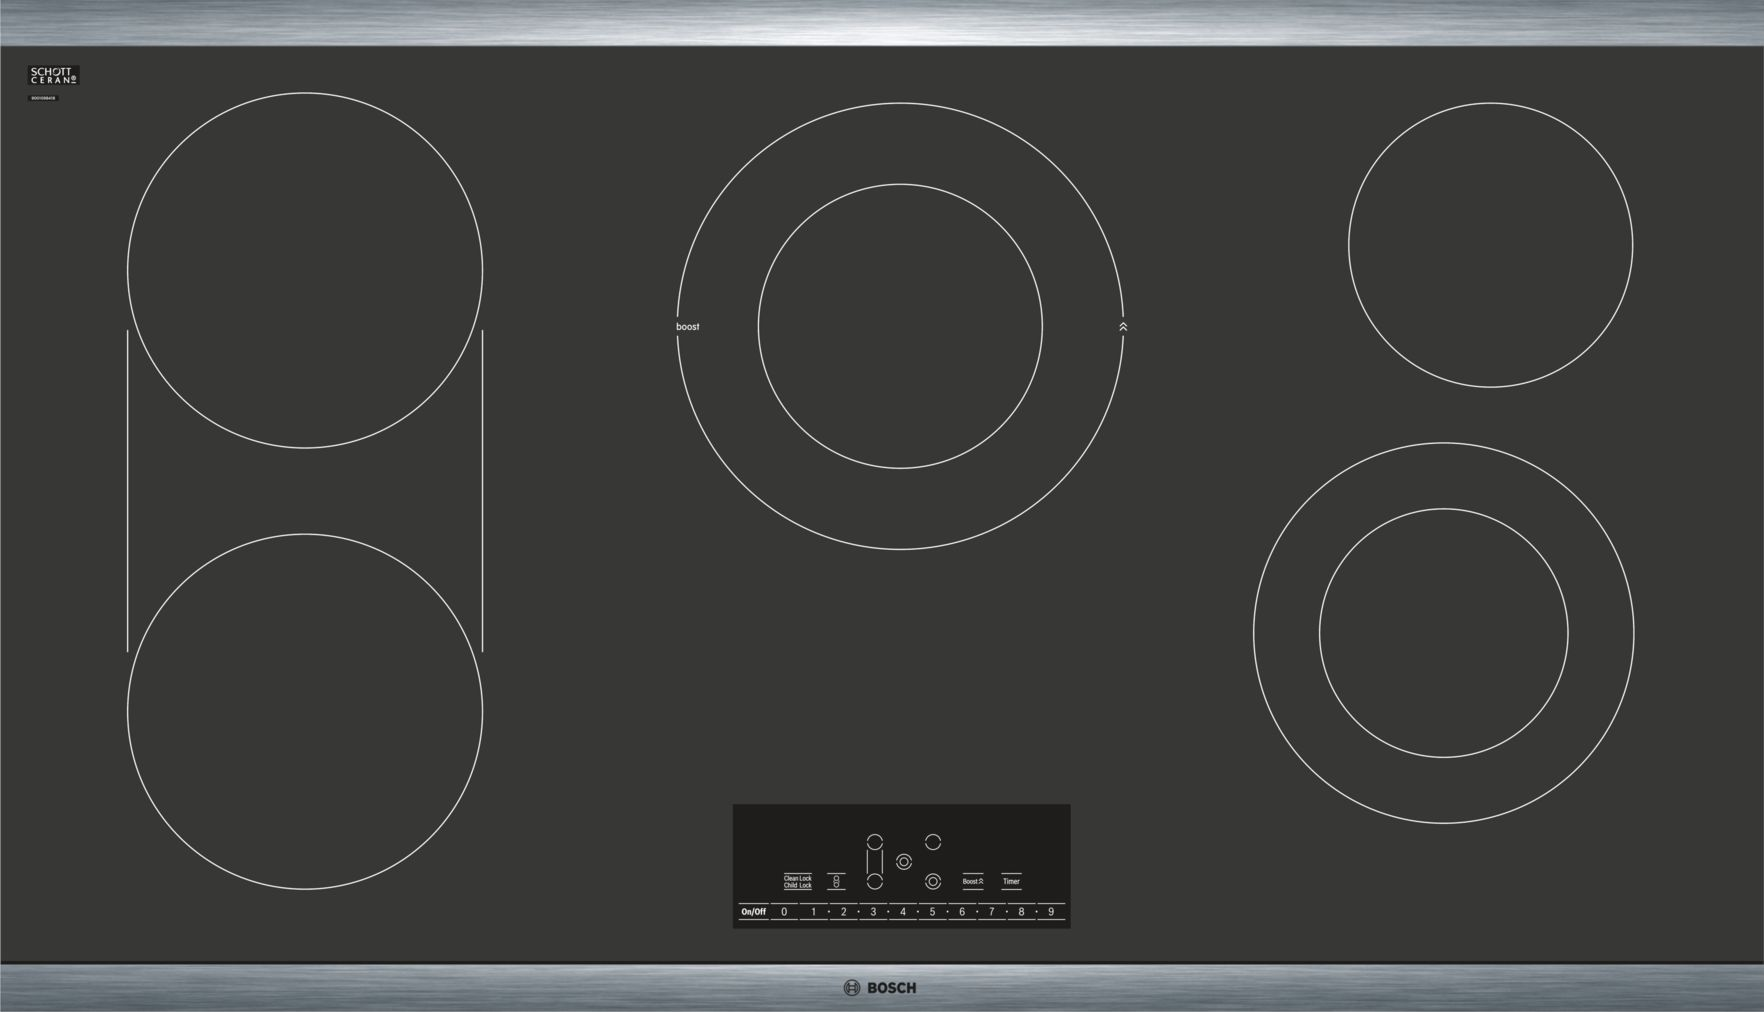 "Bosch 800 Series36"" Touch Control Electric Cooktop, NET8668SUC, Black with Stainless Steel Frame"